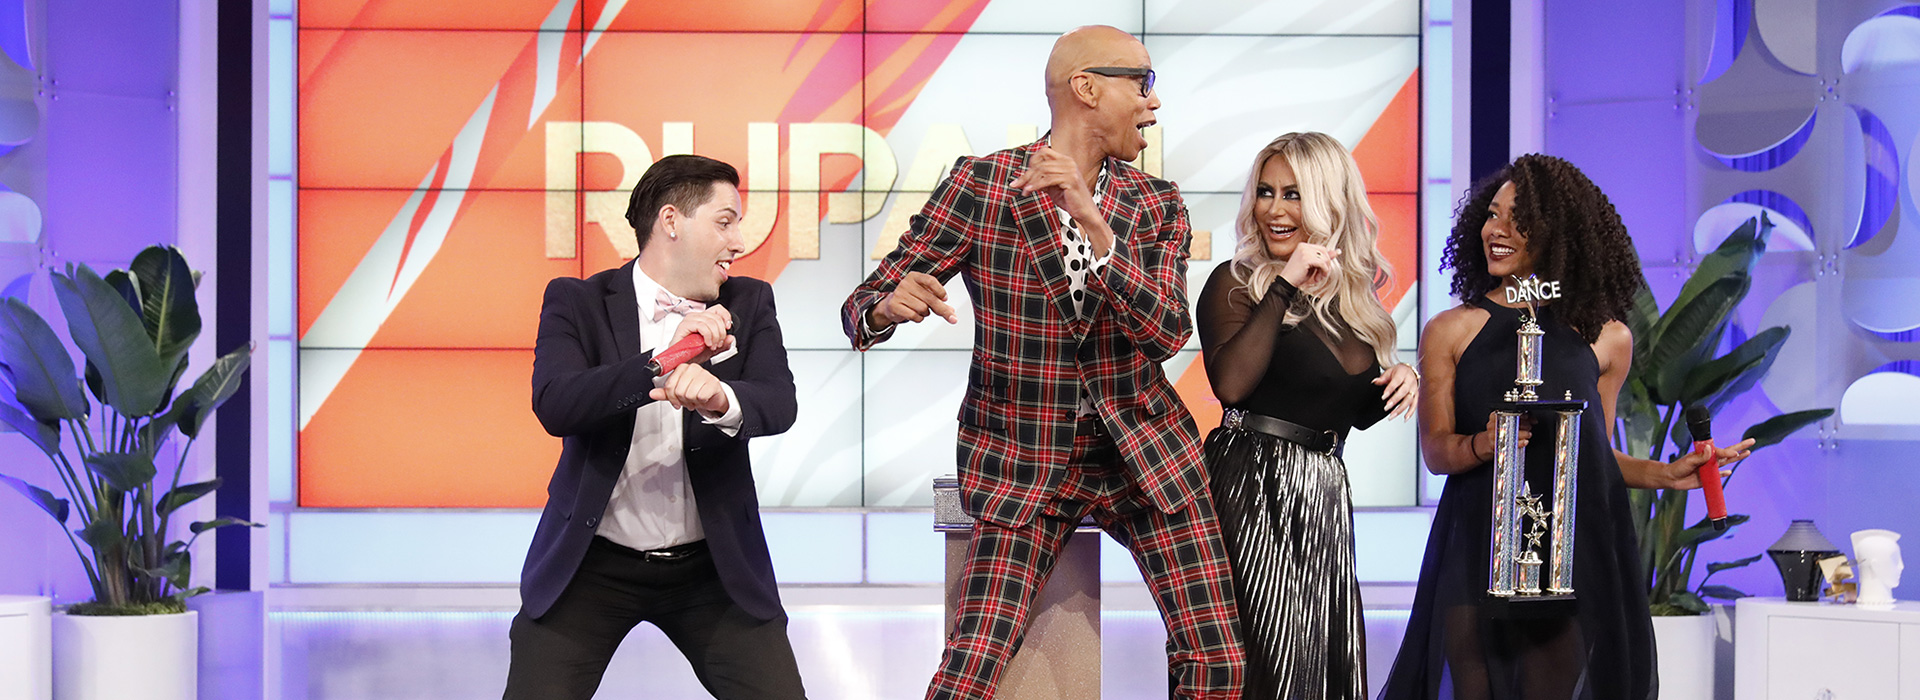 rupaul-full-header.jpg